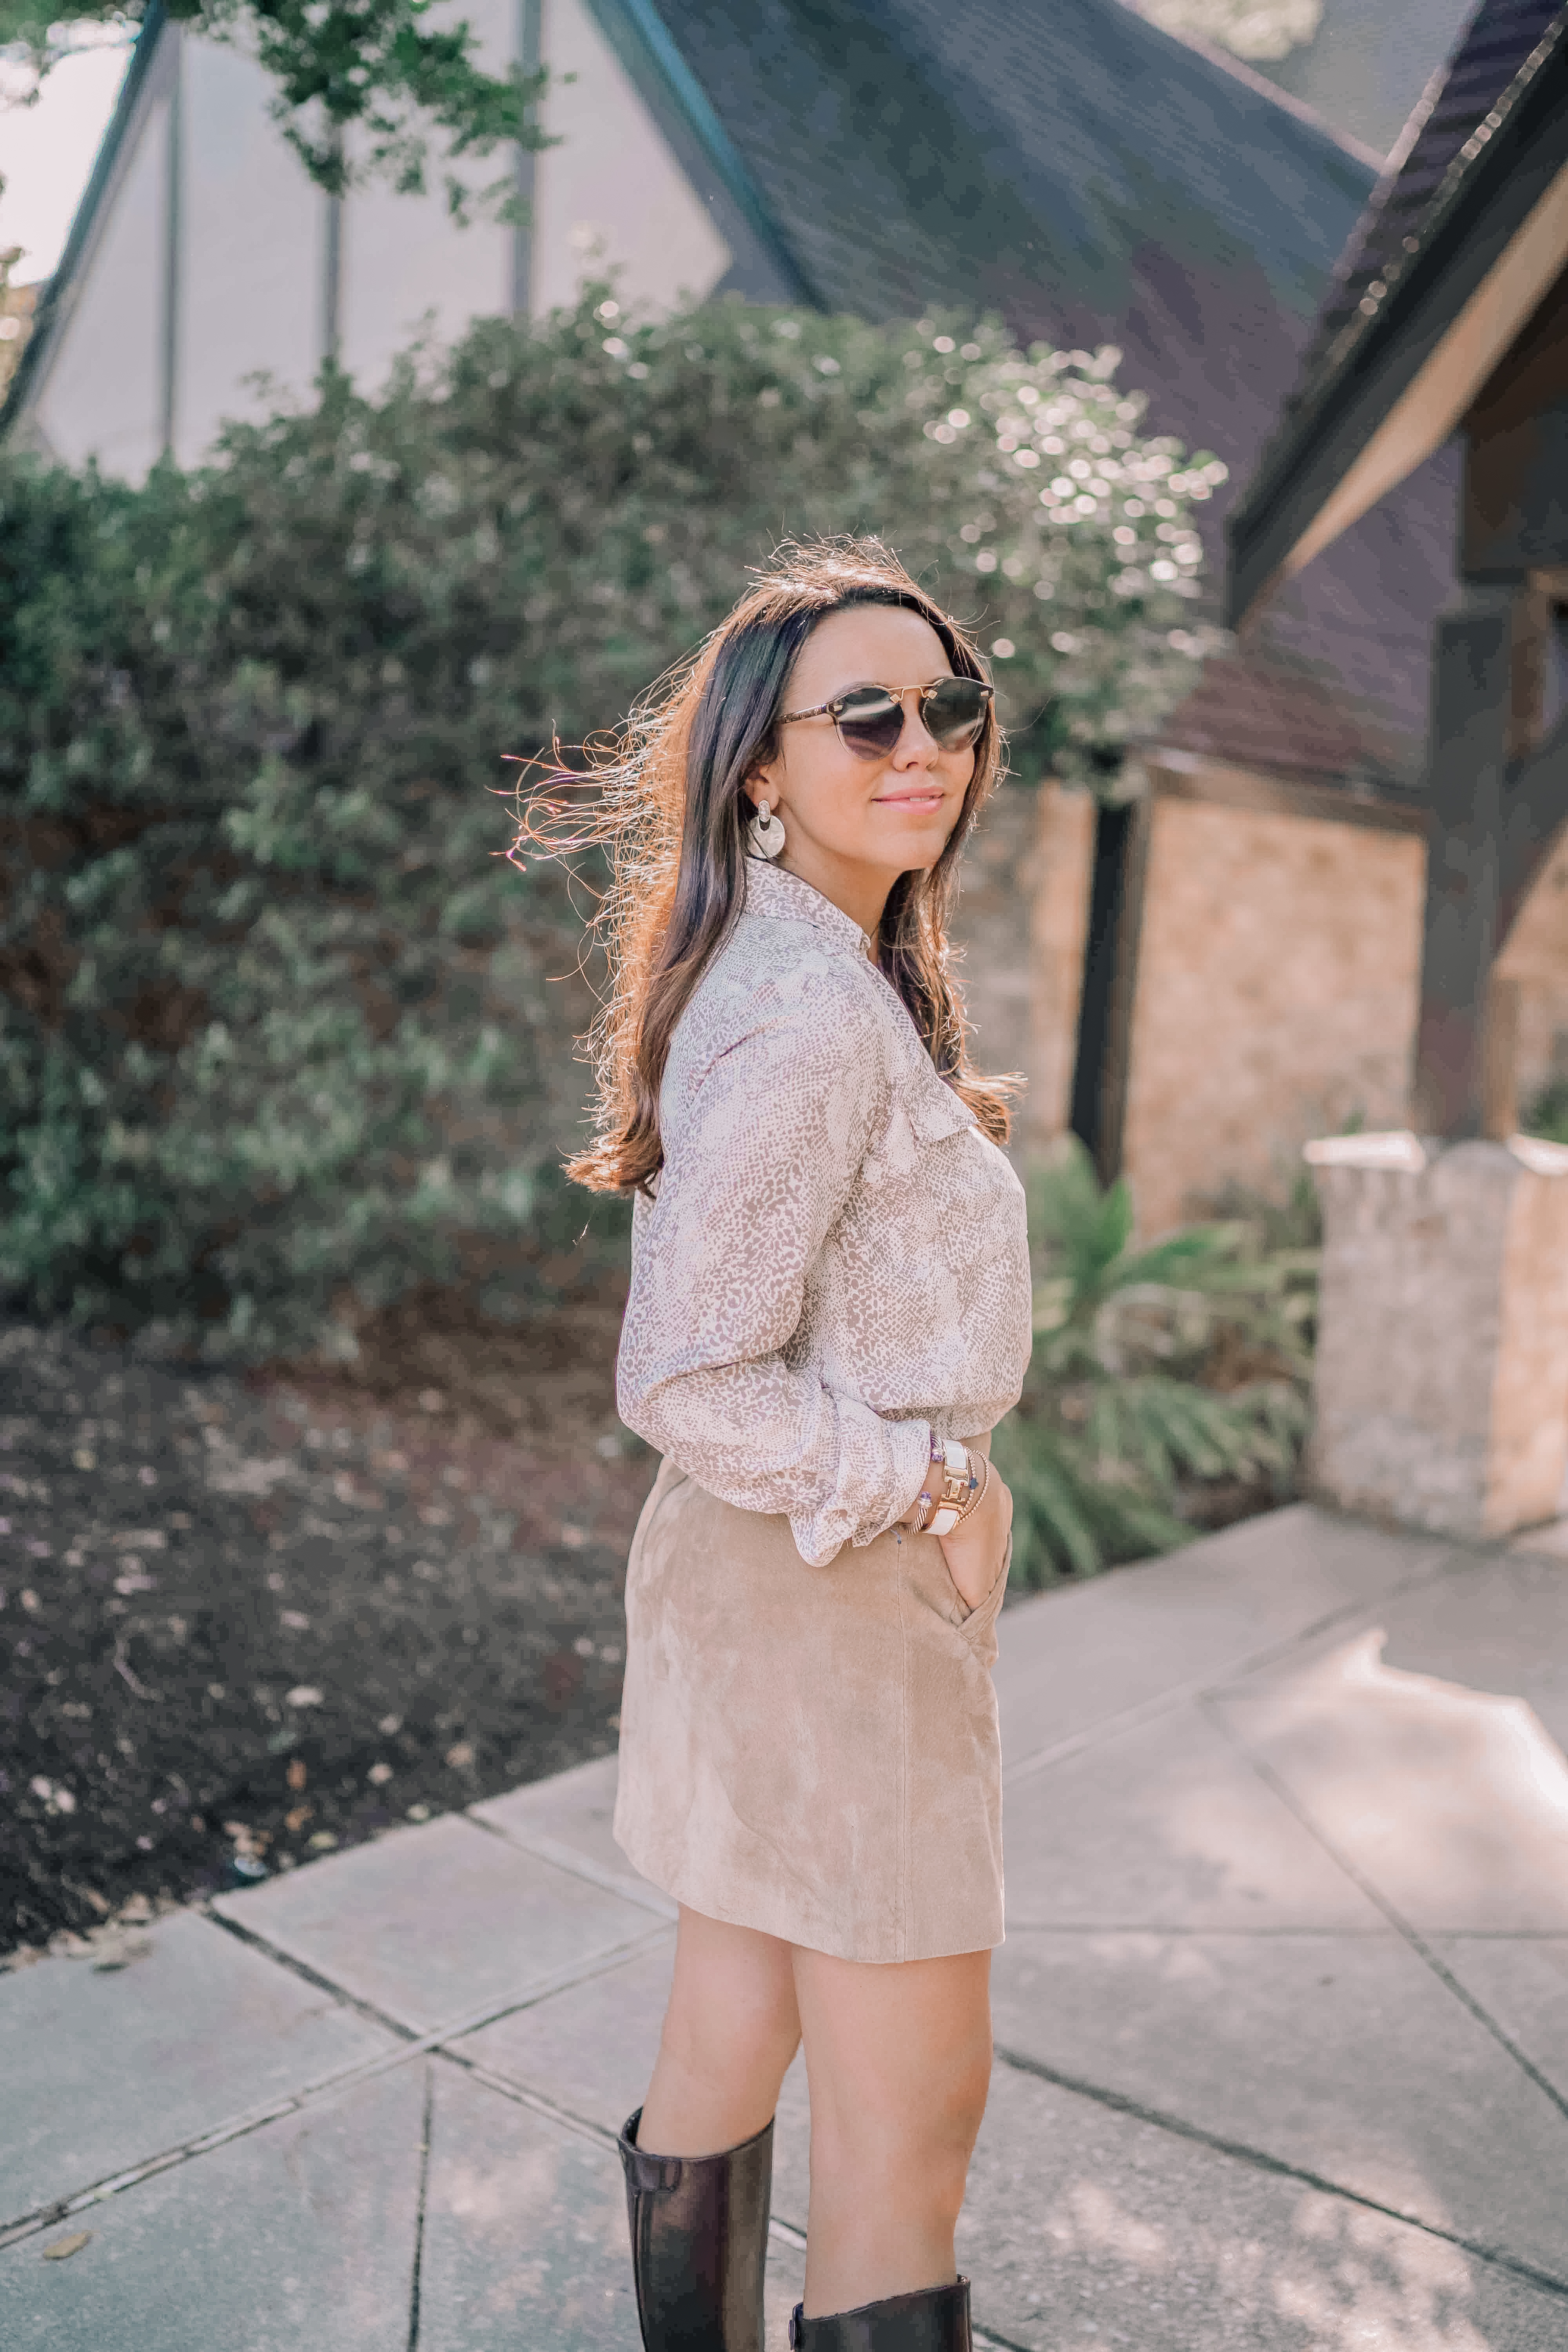 Houston fashion blogger Alex wears a snake print top with a suede skirt and riding boots